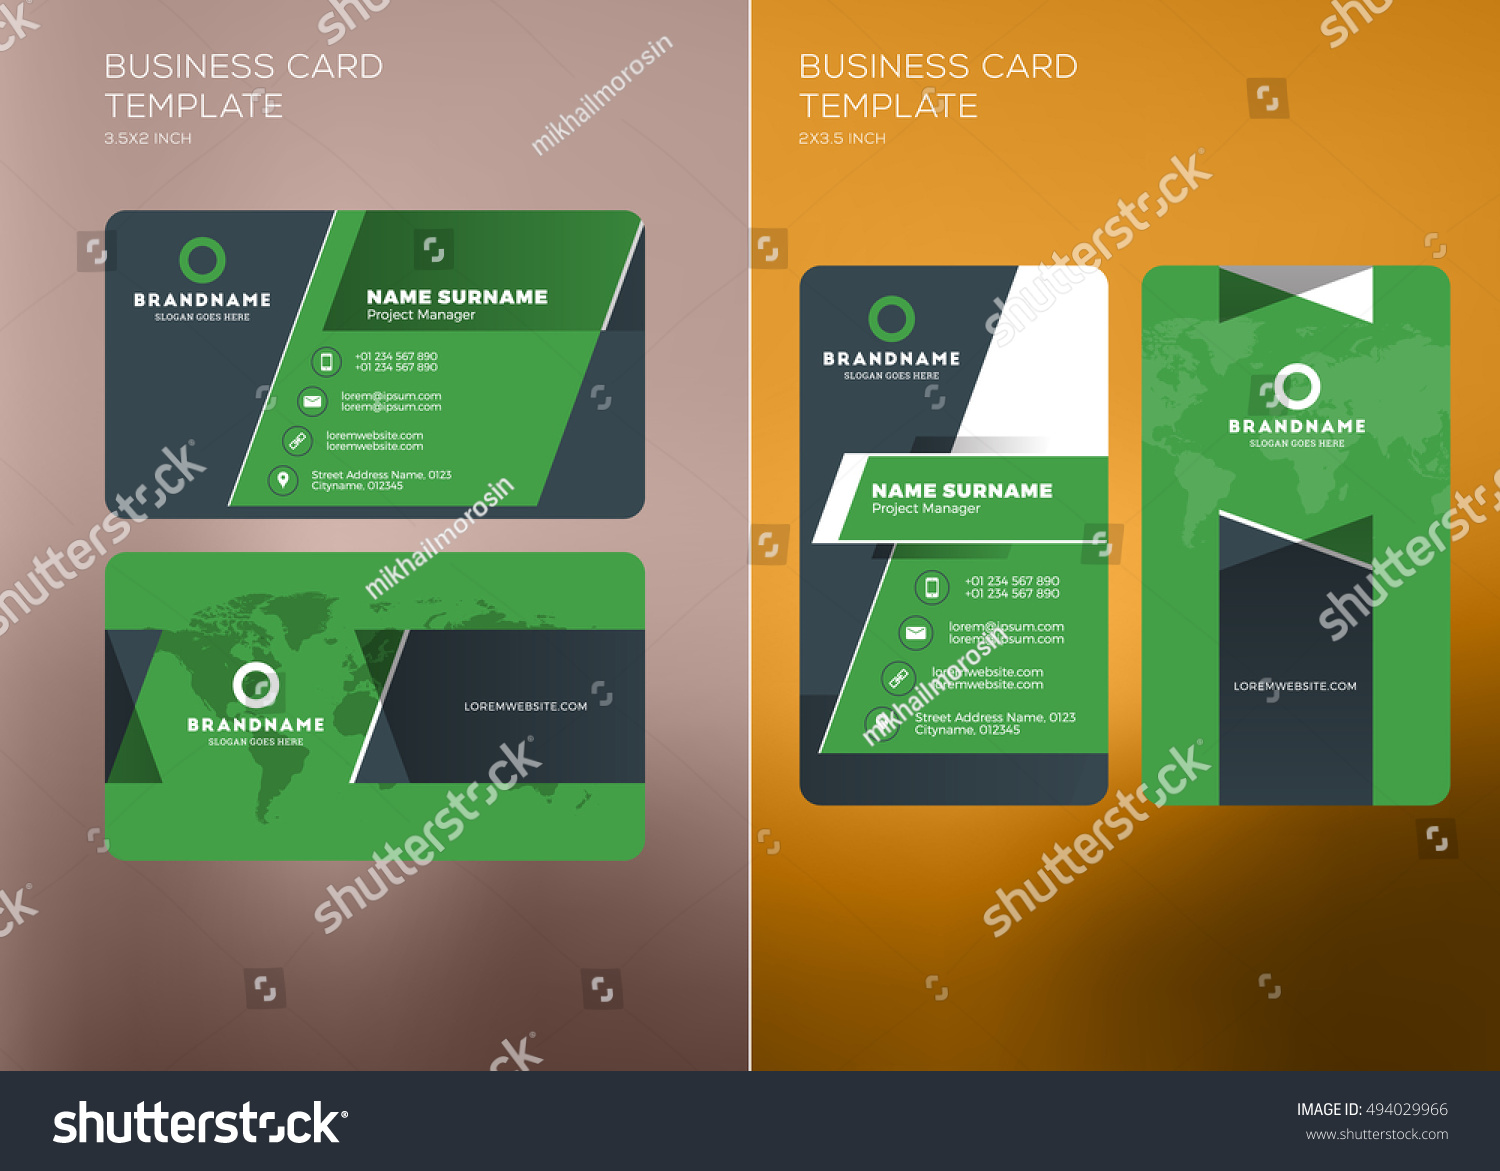 Corporate business card print template personal stock vector corporate business card print template personal visiting card with company logo vertical and horizontal accmission Images